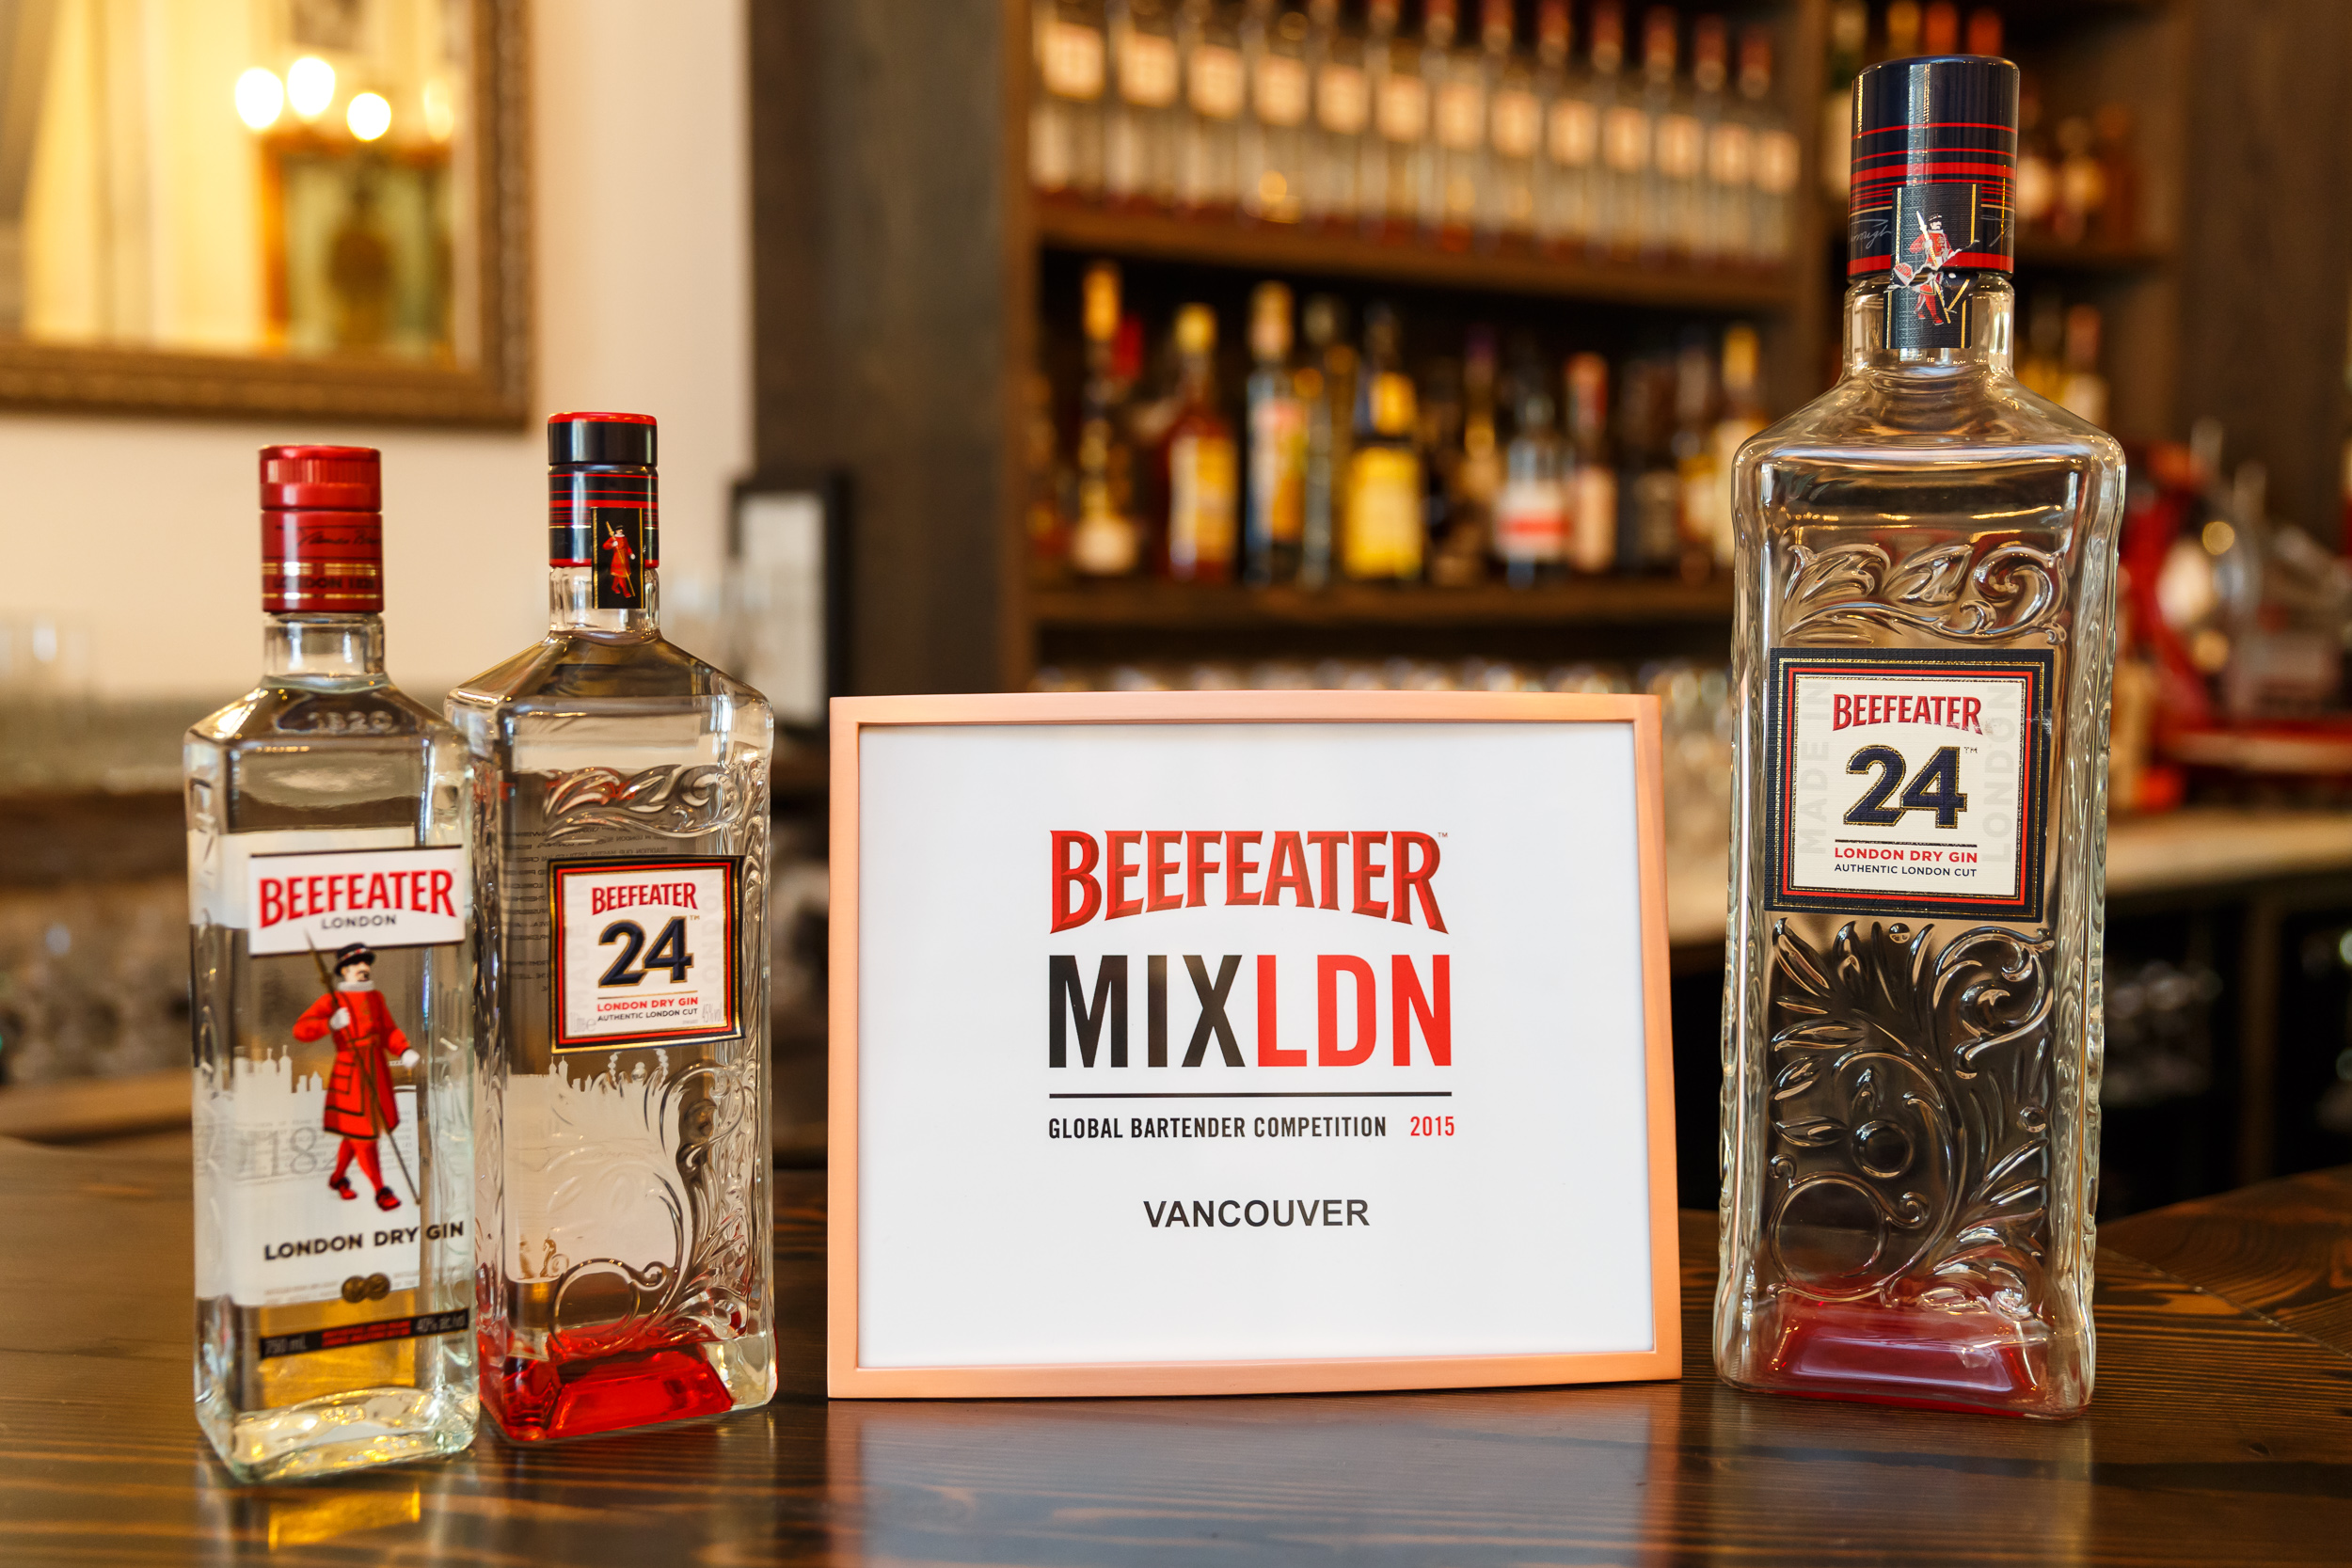 Beefeater-MIXLDN-photo-1.jpg